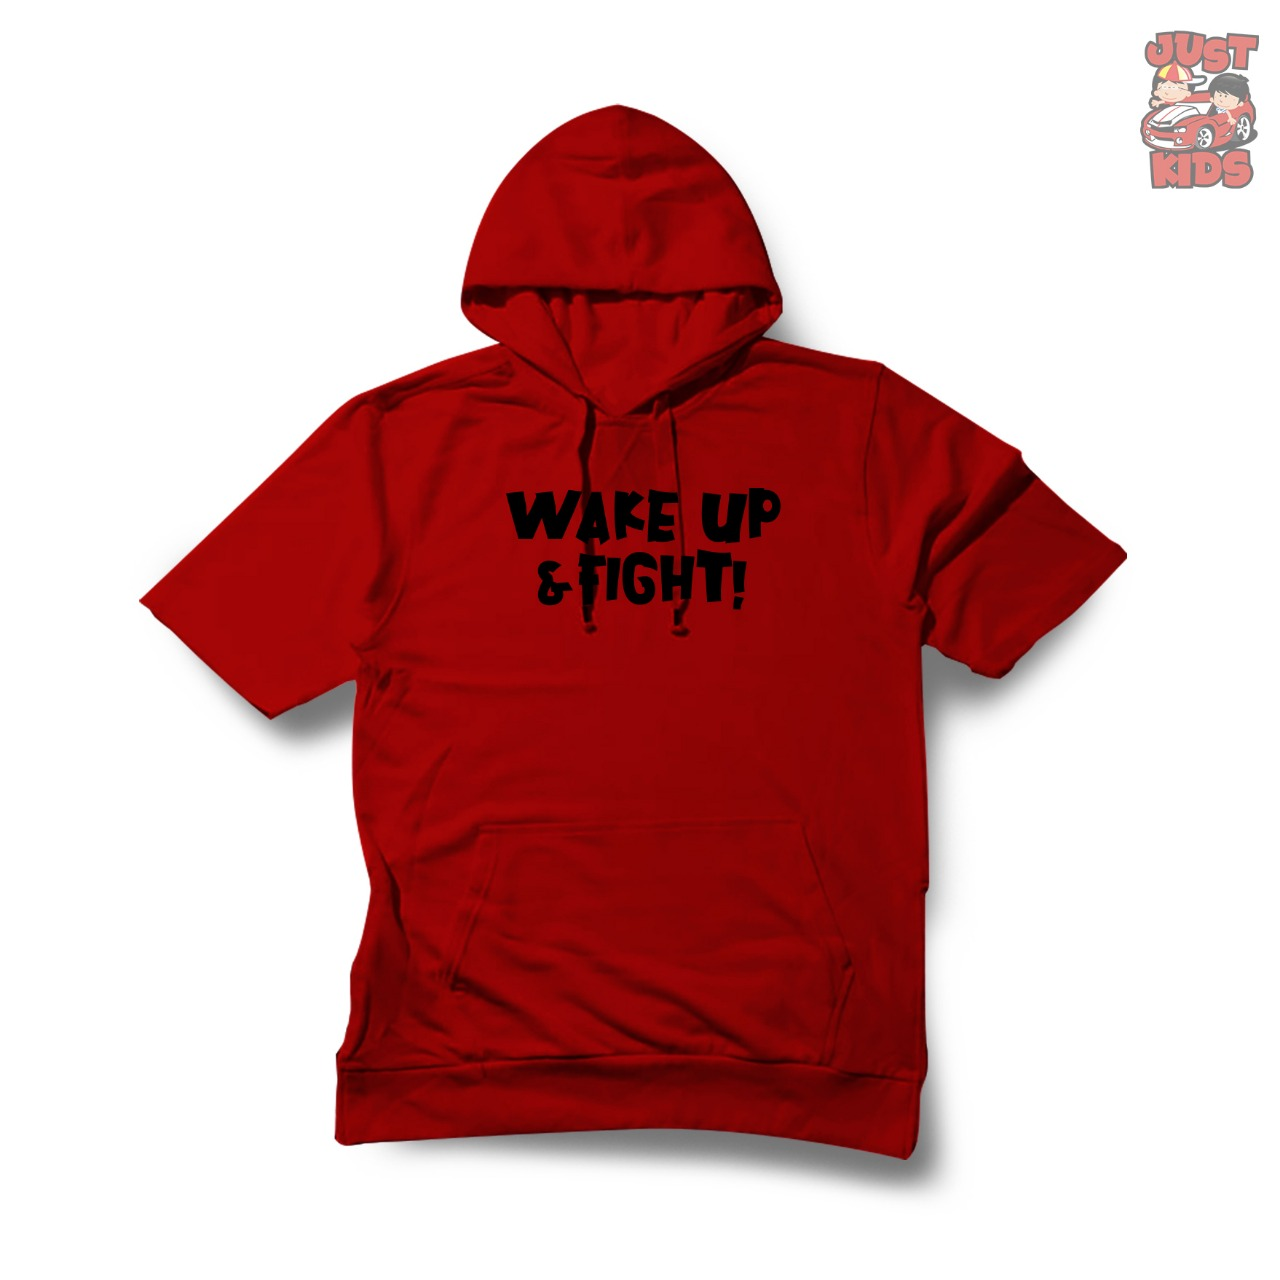 HODIE JUST KIDS (WAKE UP & FIGHT) (ANKL00106)